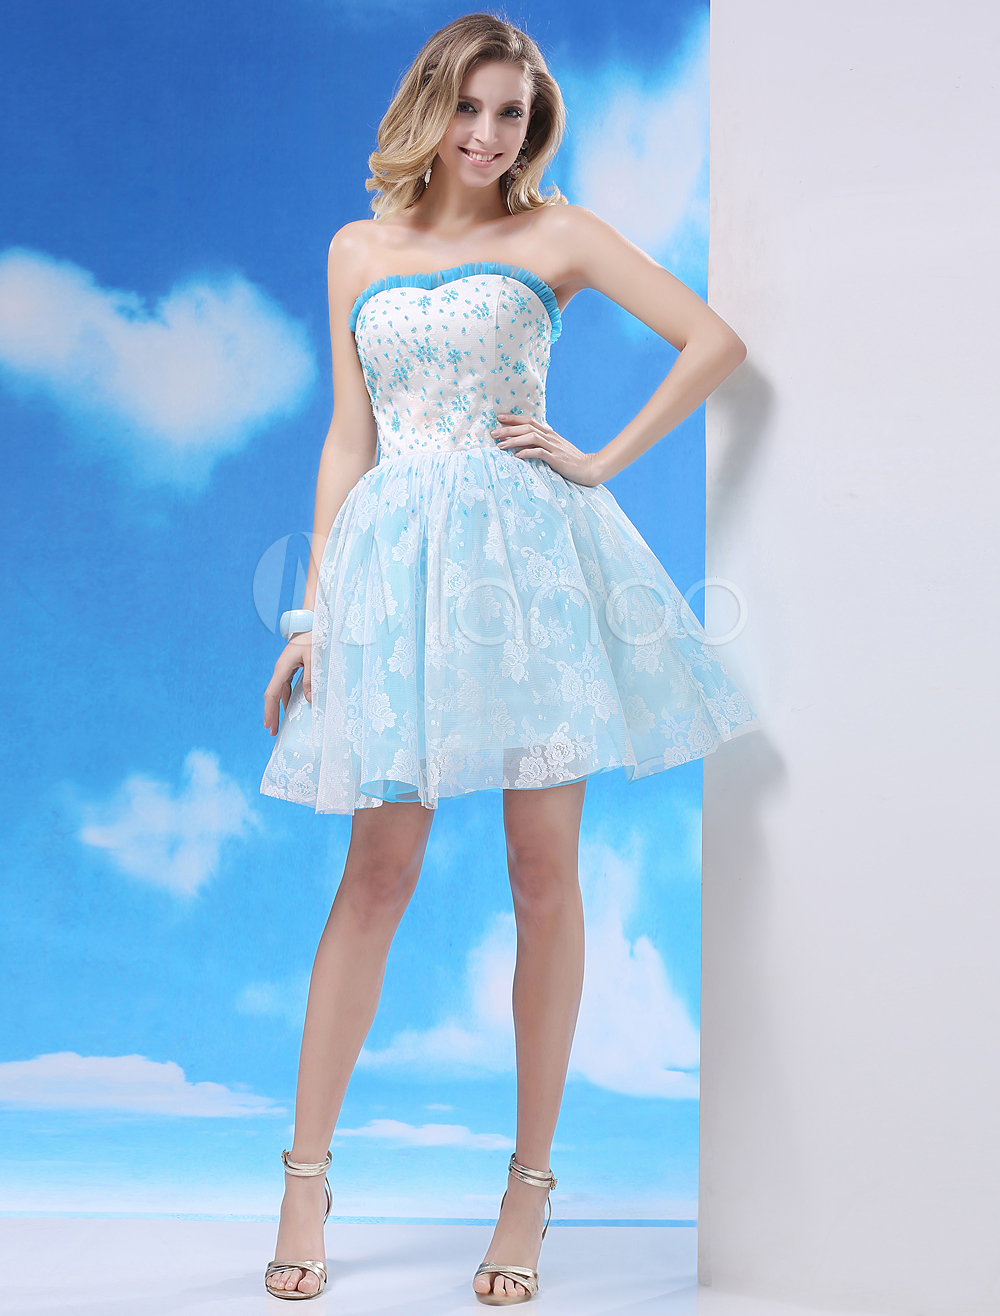 Buy Lace Prom Dress Aqua A Line Cocktail Dress Strapless Sweetheart Beaded Short Party Dress Milanoo for $112.49 in Milanoo store